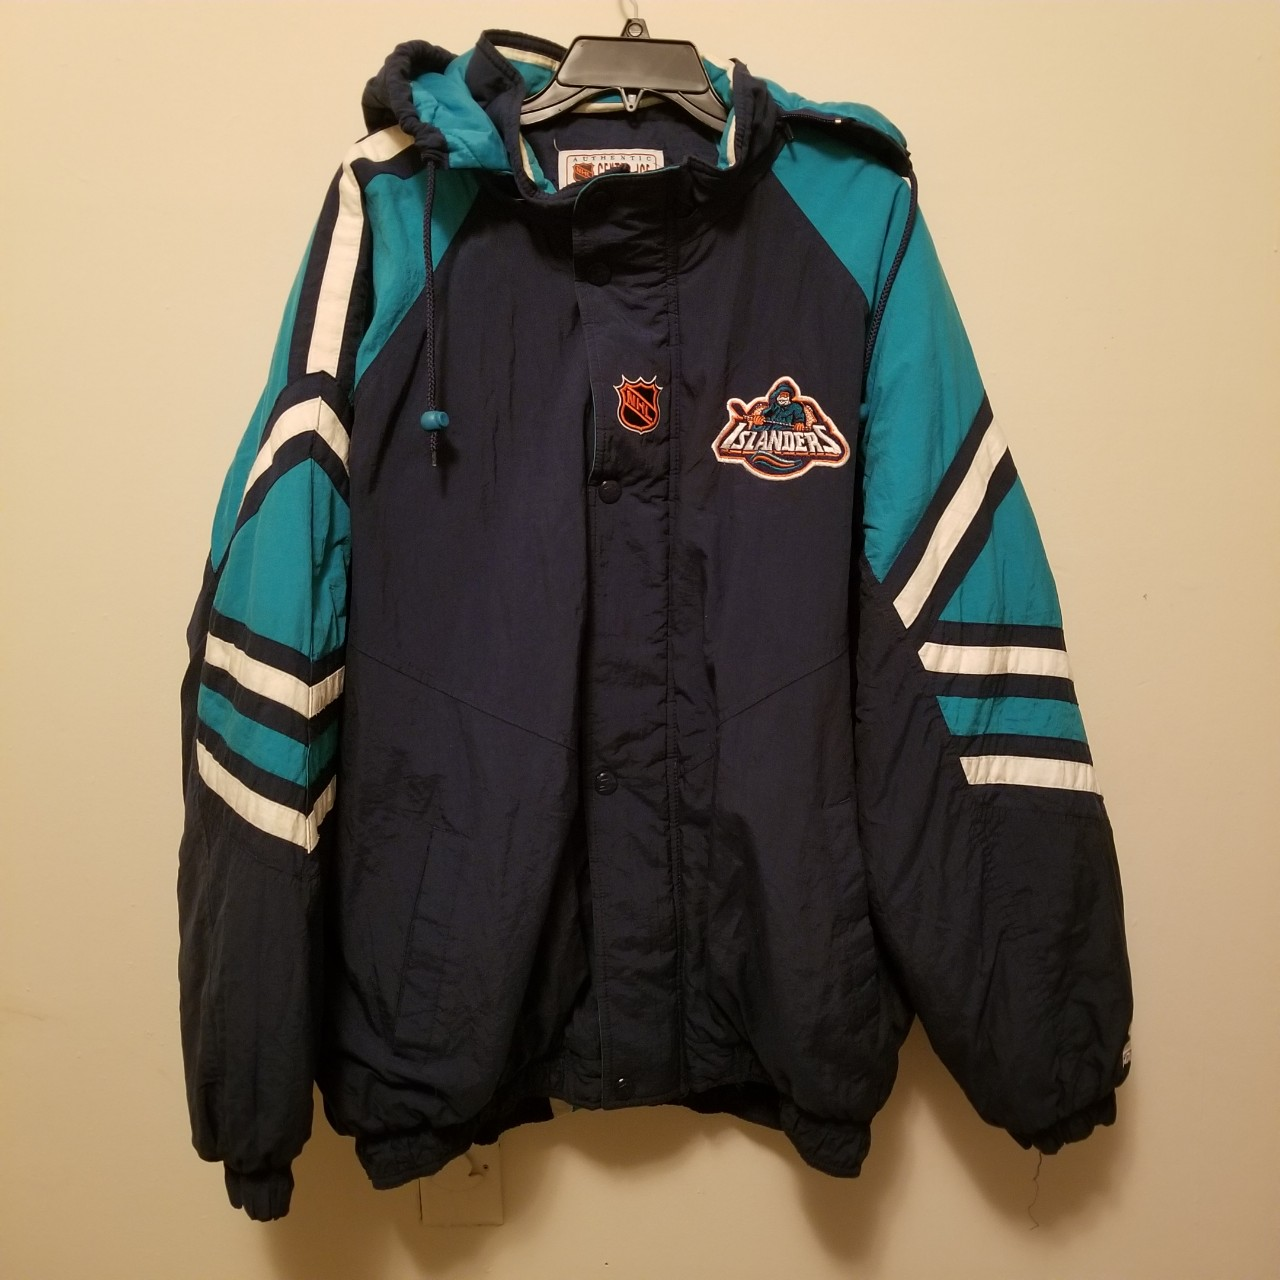 online store 146be 45488 Vintage New York Islanders Fisherman Starter Jacket... - Depop